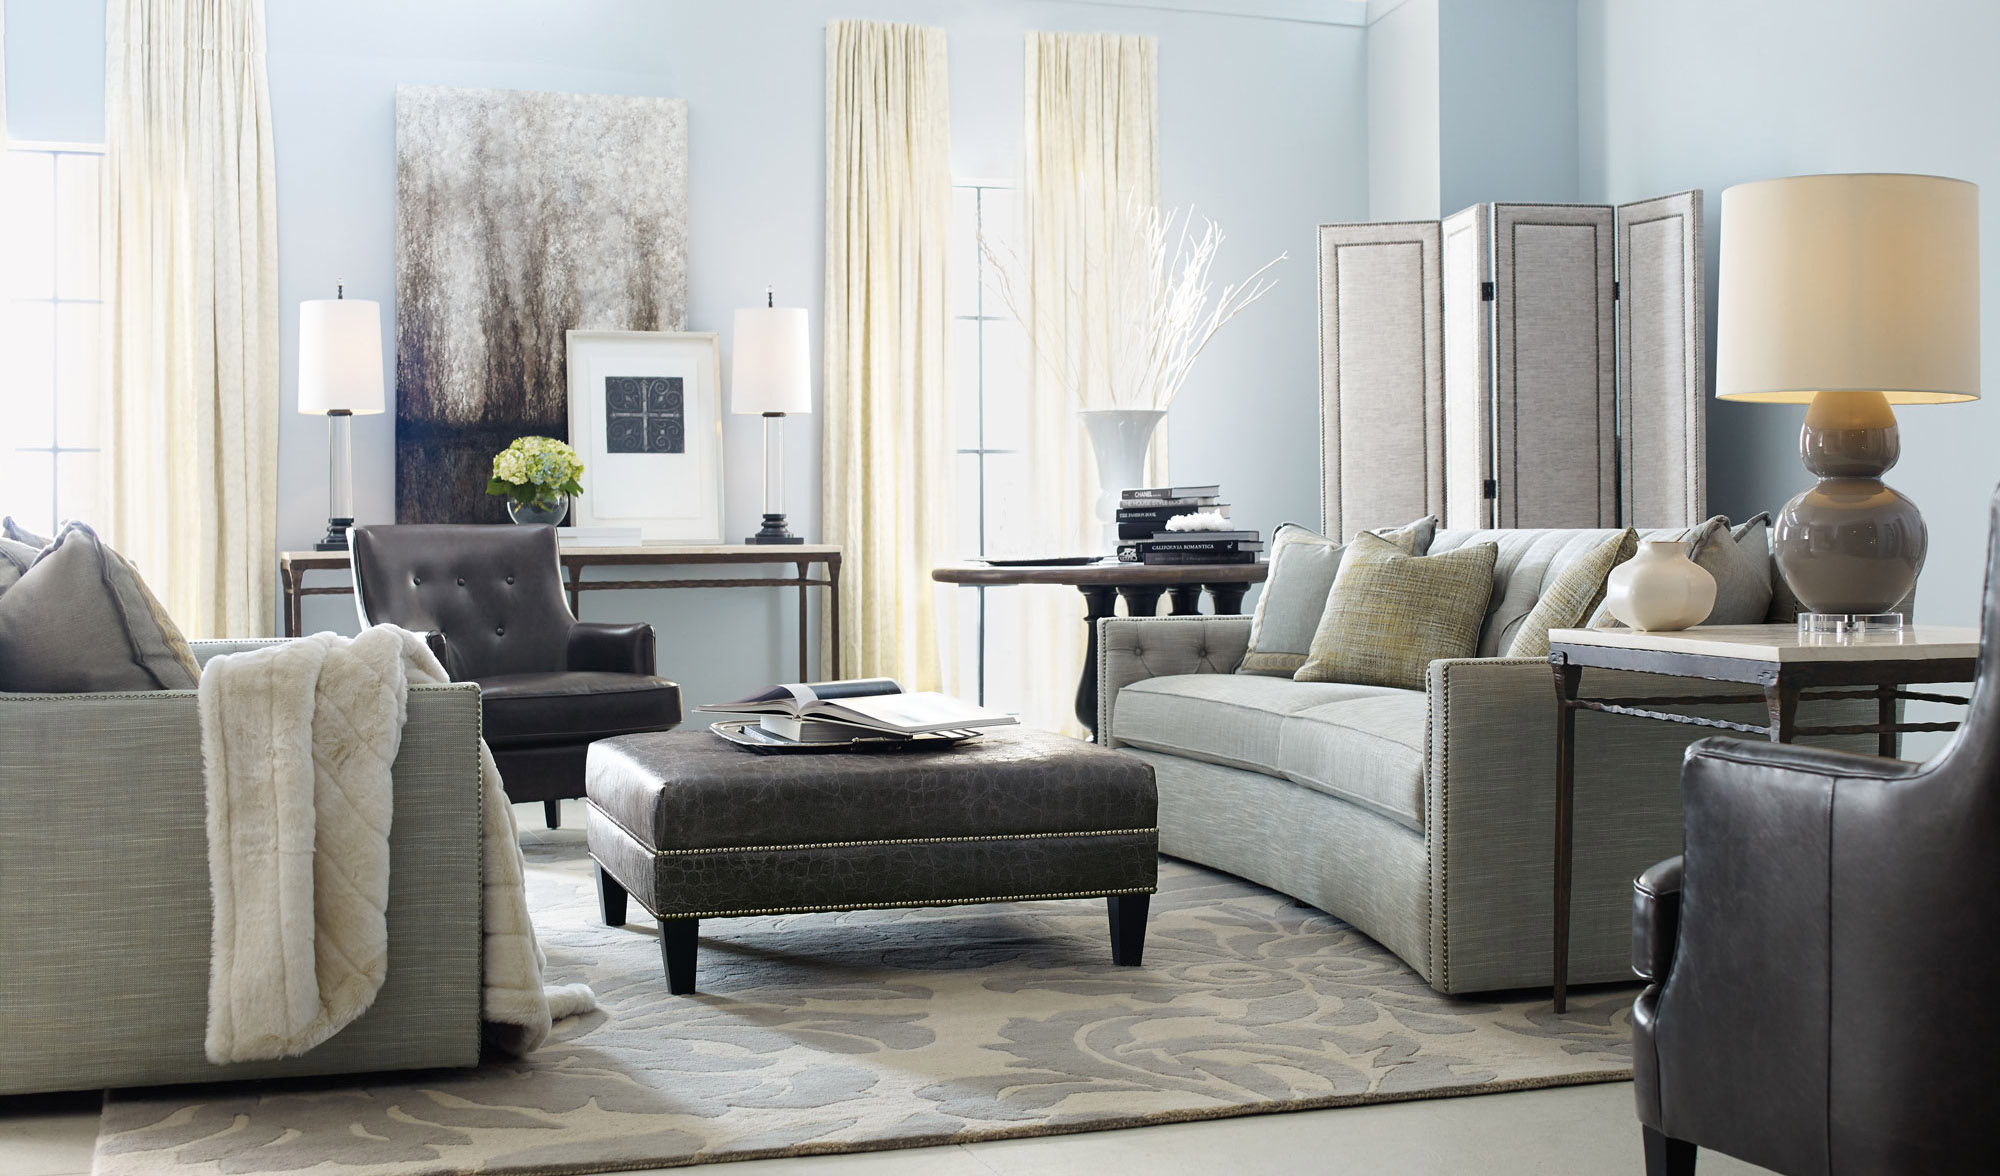 home goods living room ferrell rancho desmond rialto living room bernhardt 14025